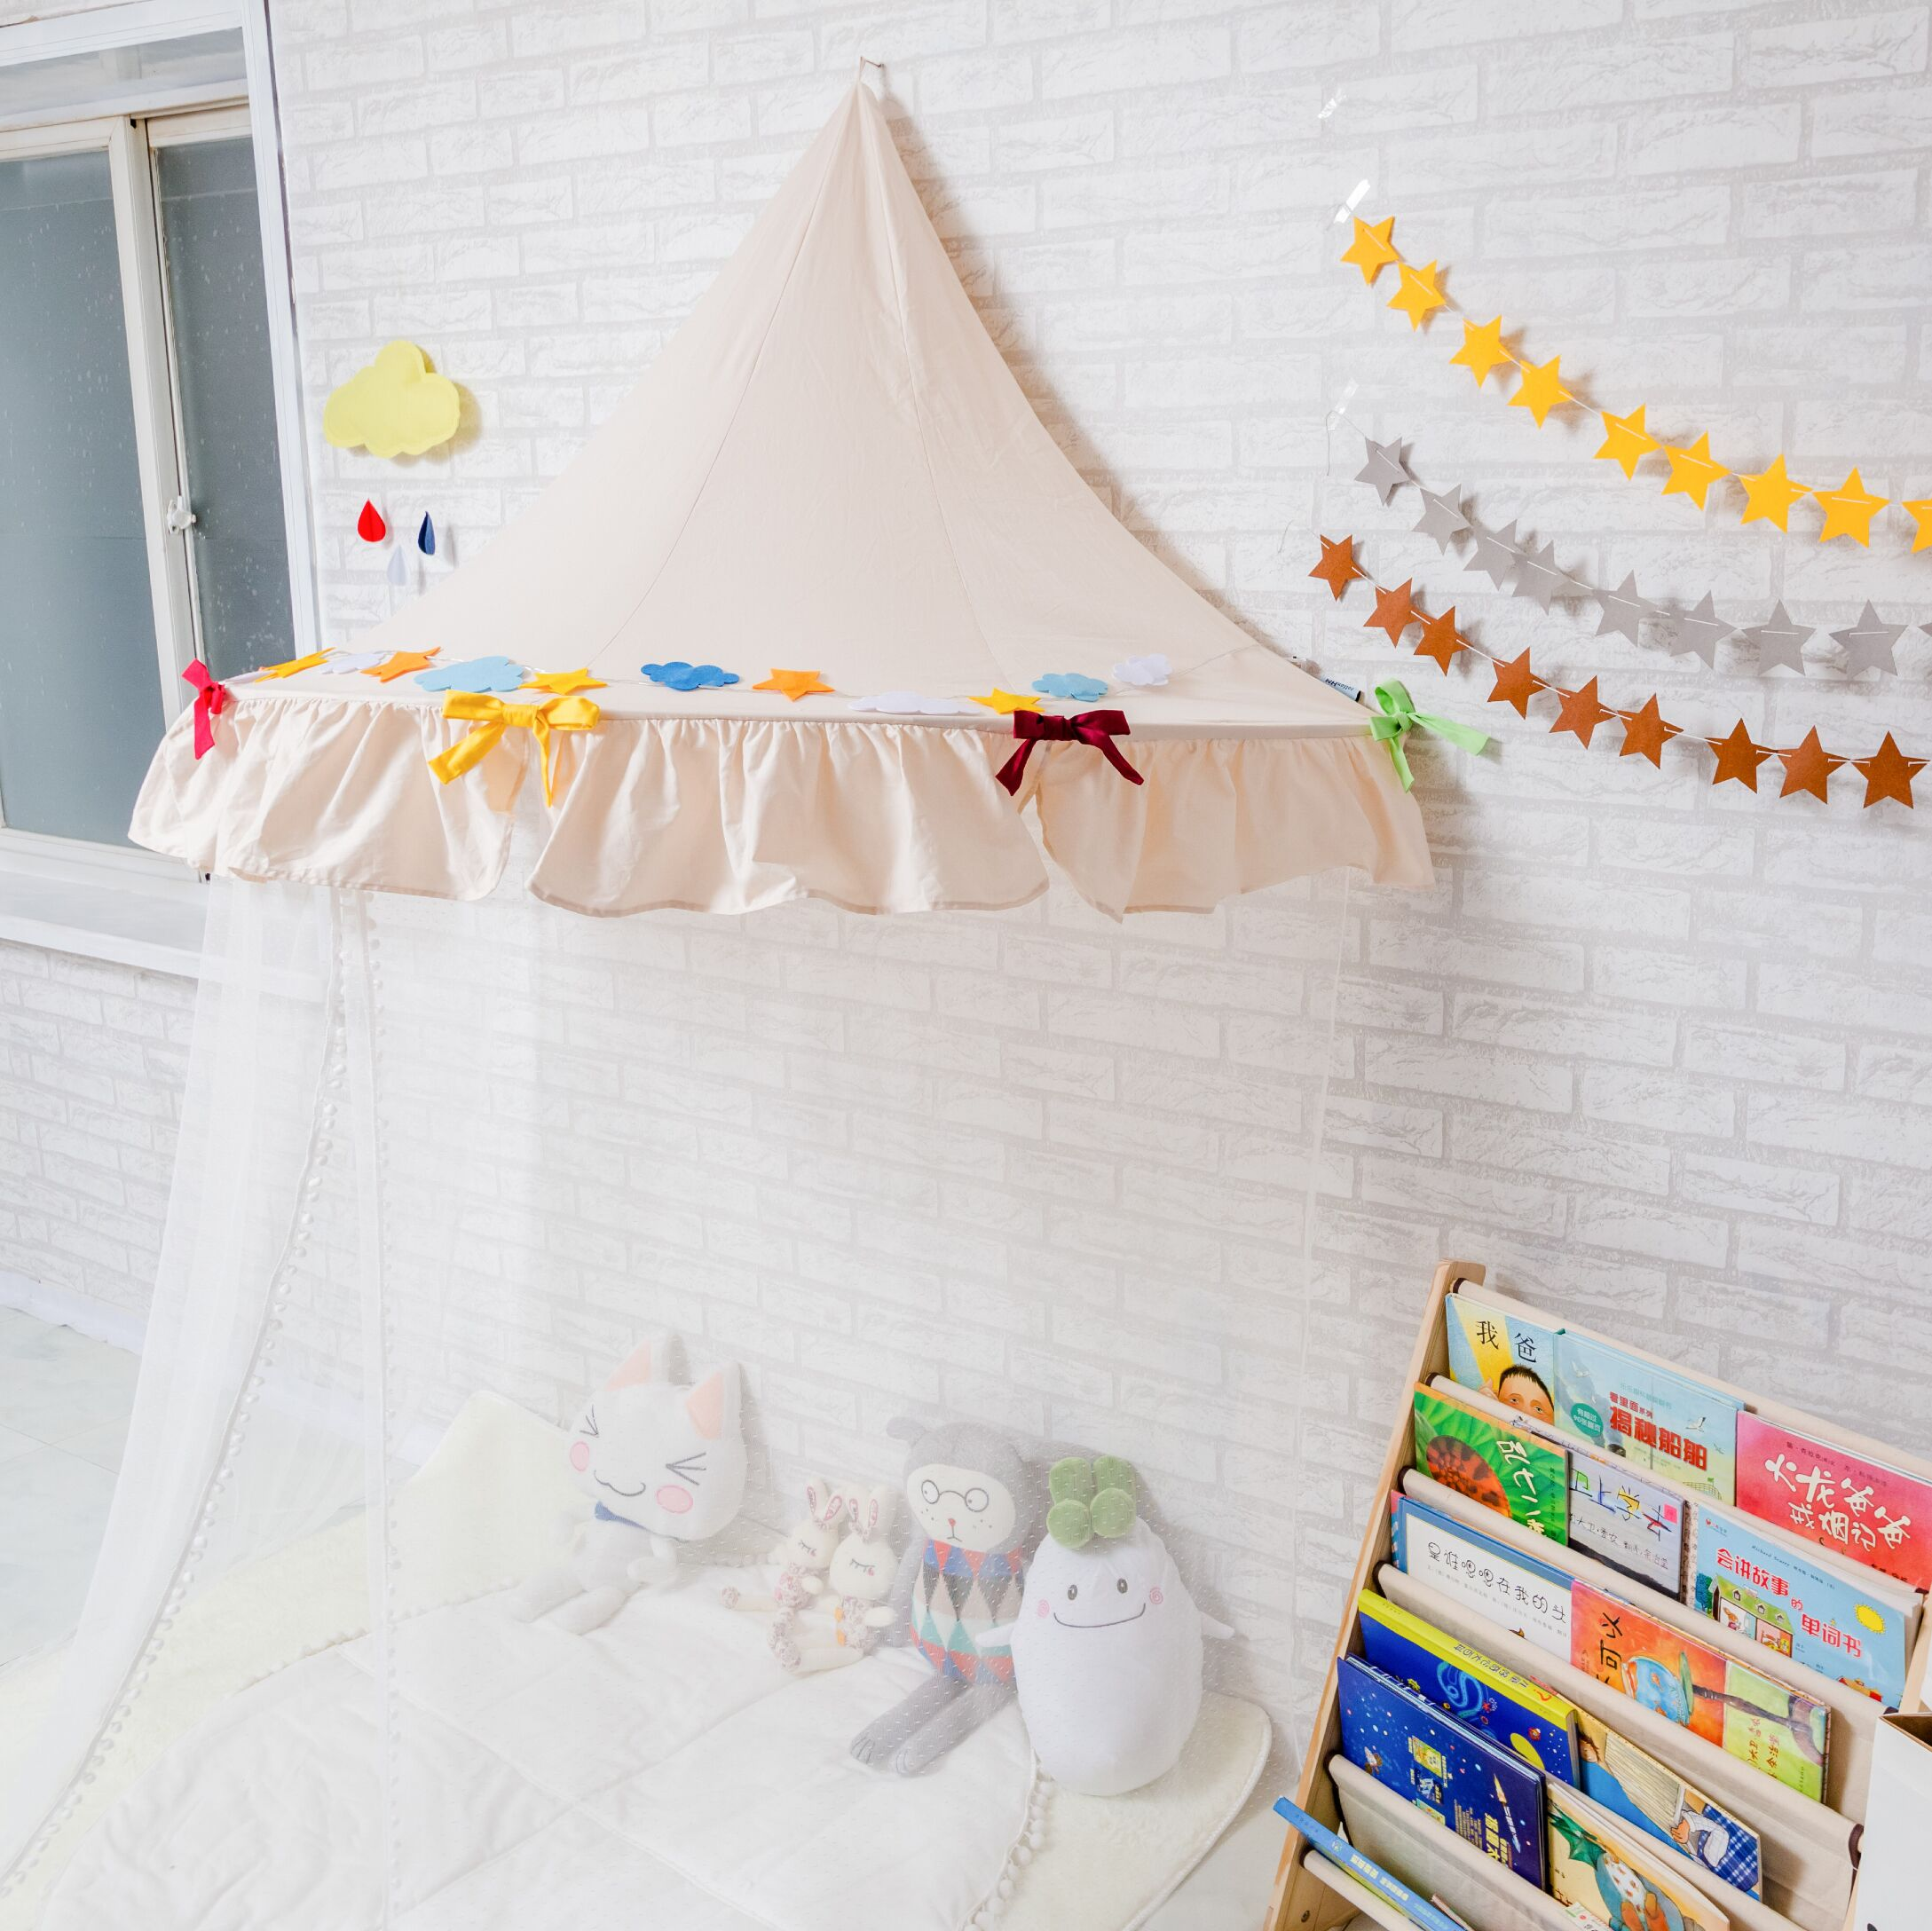 7color Cotton Indian Style Children Tent Bed Mantle Indoor Game House Baby Photography Reading Corner Toys Room Crib Netting